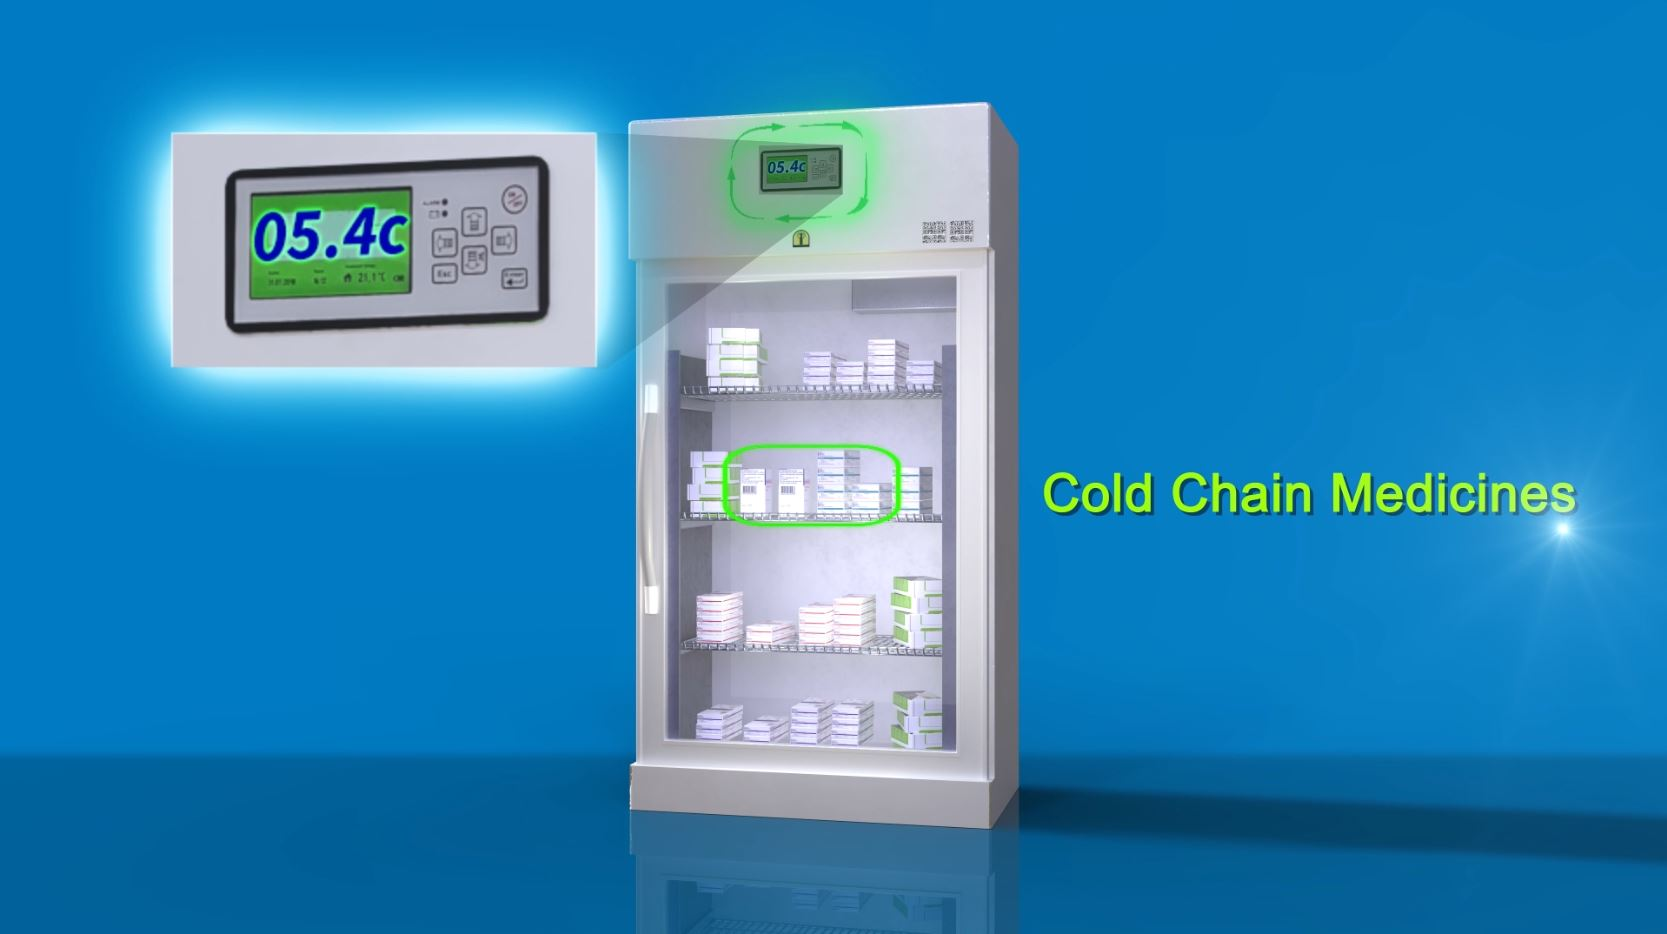 Cold Chain Medicine in Refrigerator